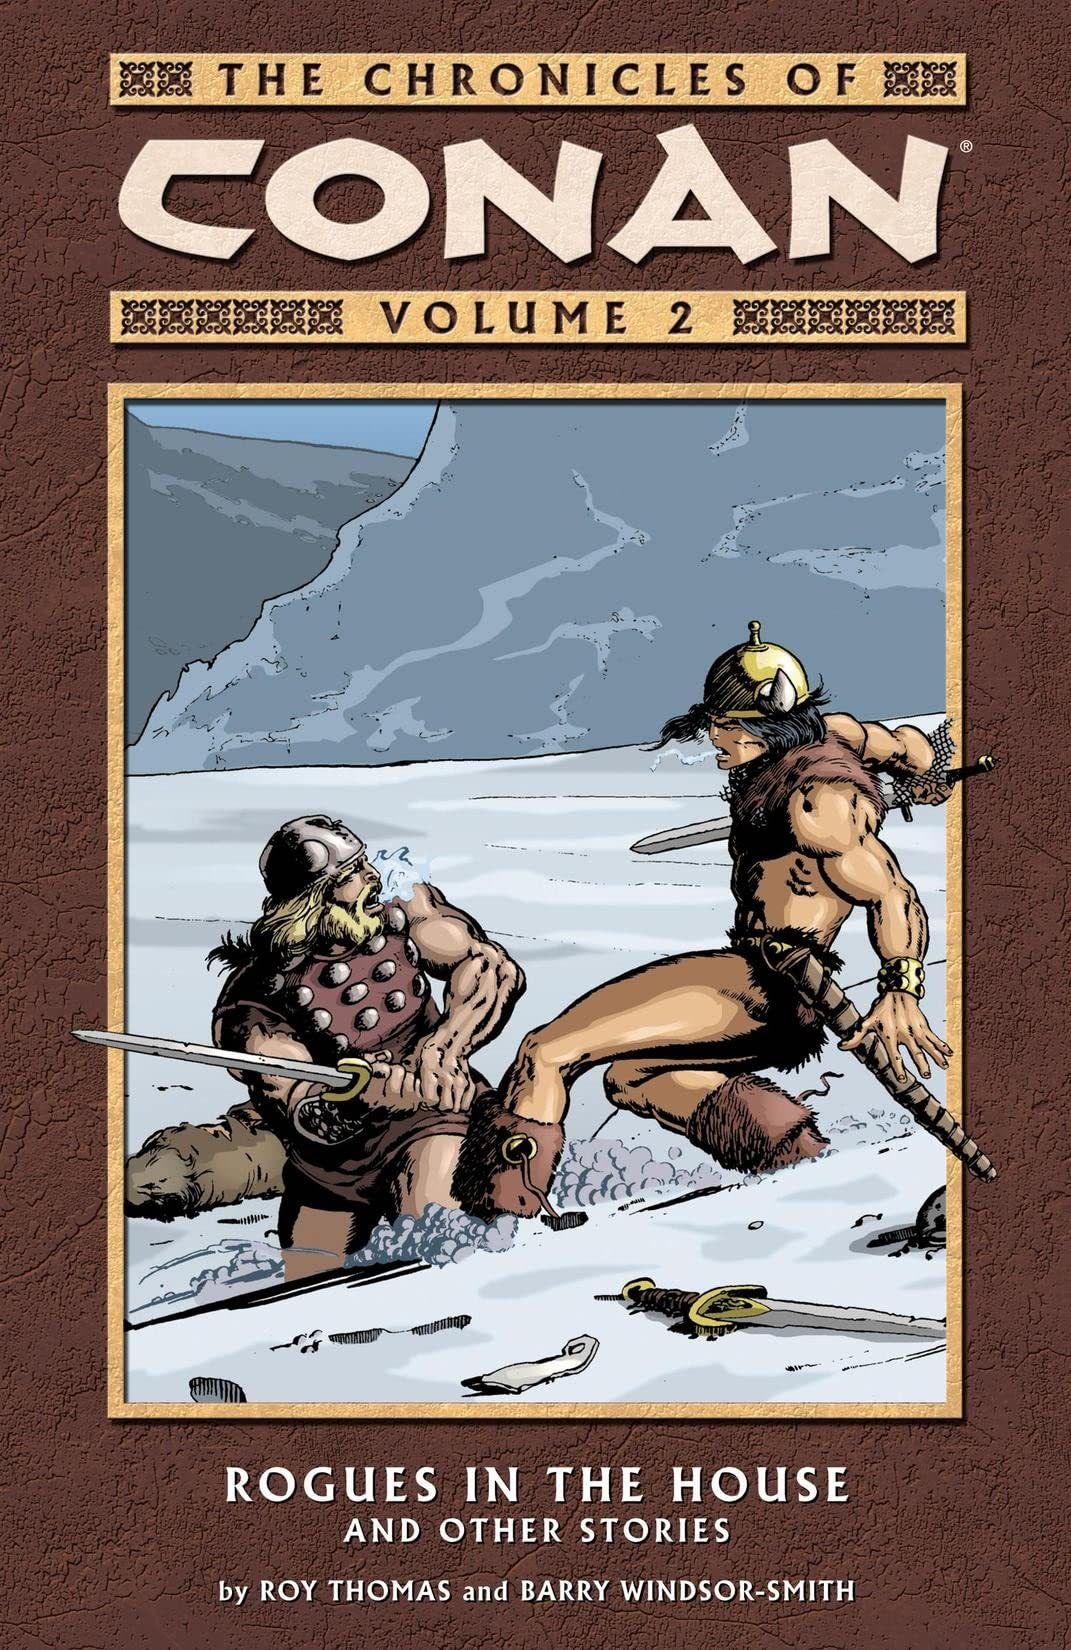 Chronicles of Conan Vol. 2: Rogues in the House and Other Stories